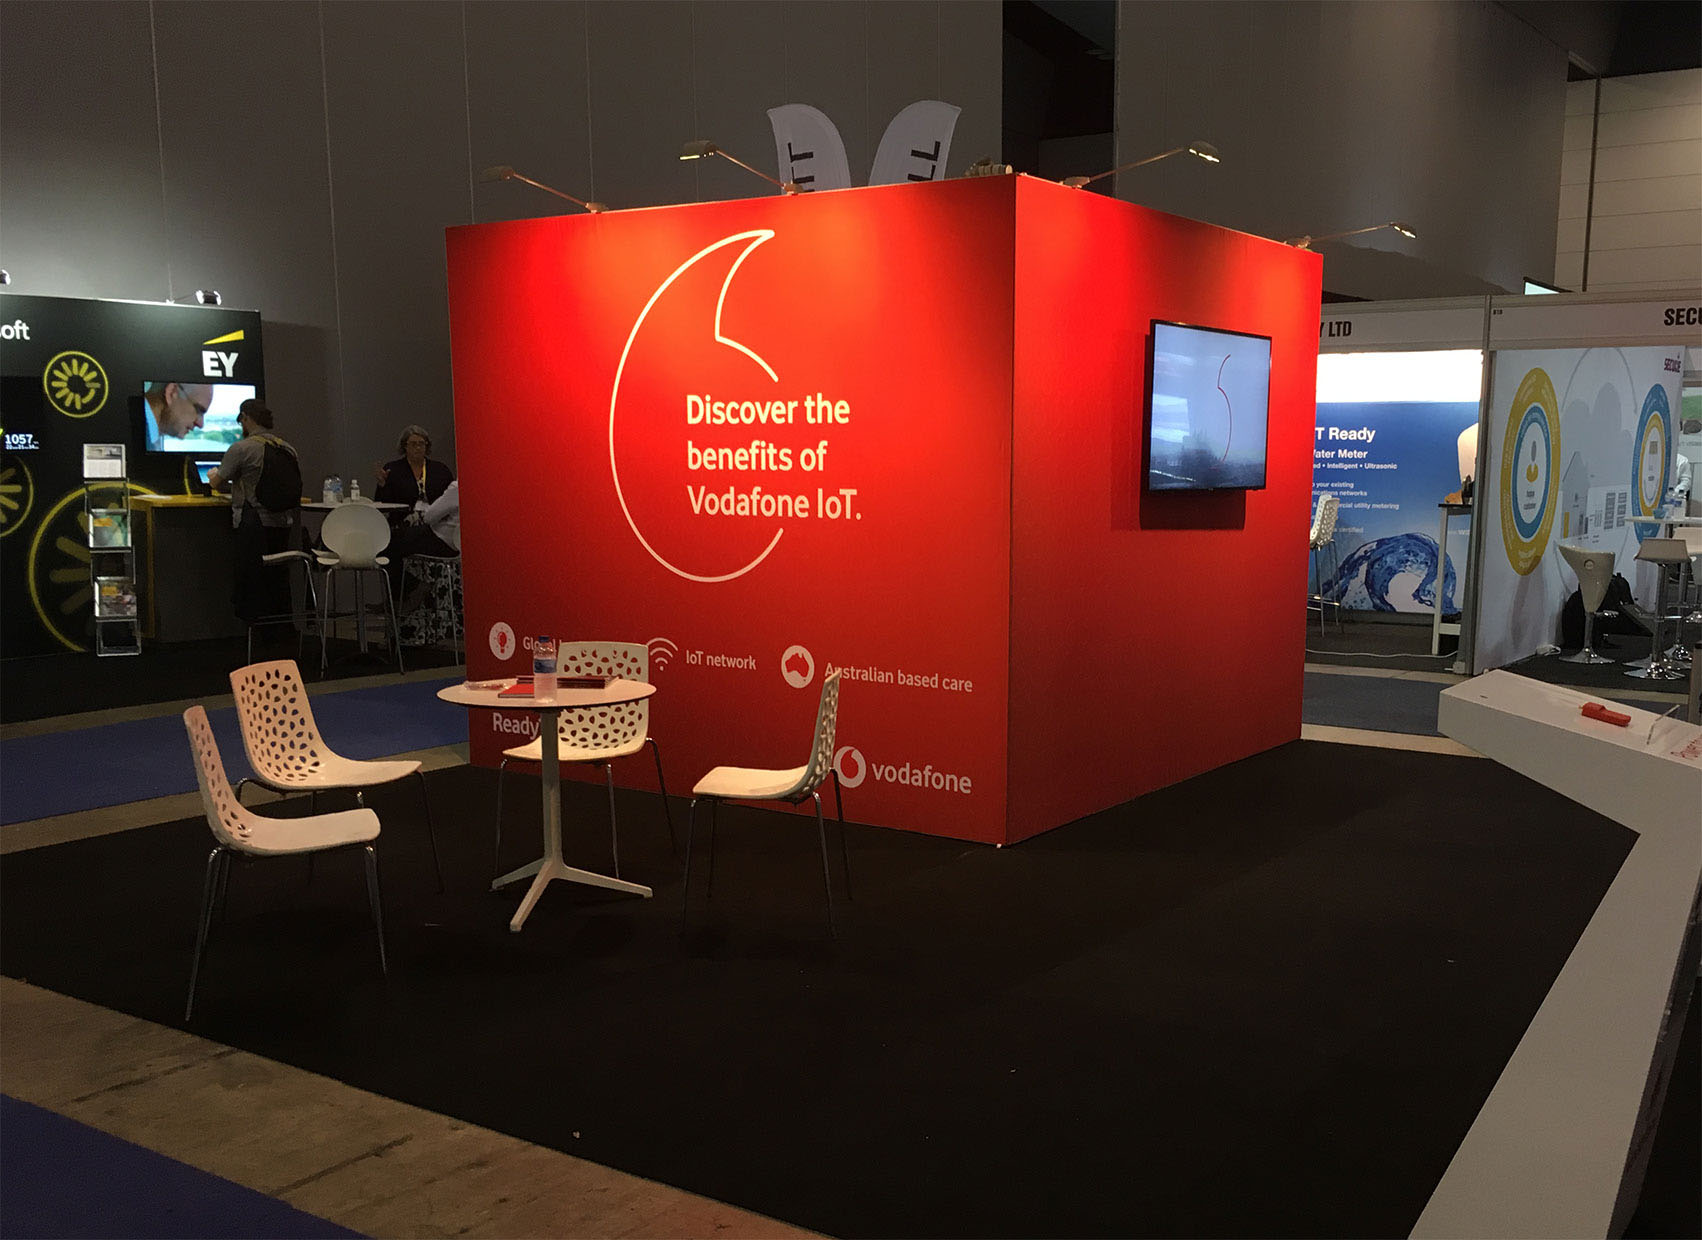 Vodaphone stand for trade show using Commercial TV and red/white Illuminated fabric frame